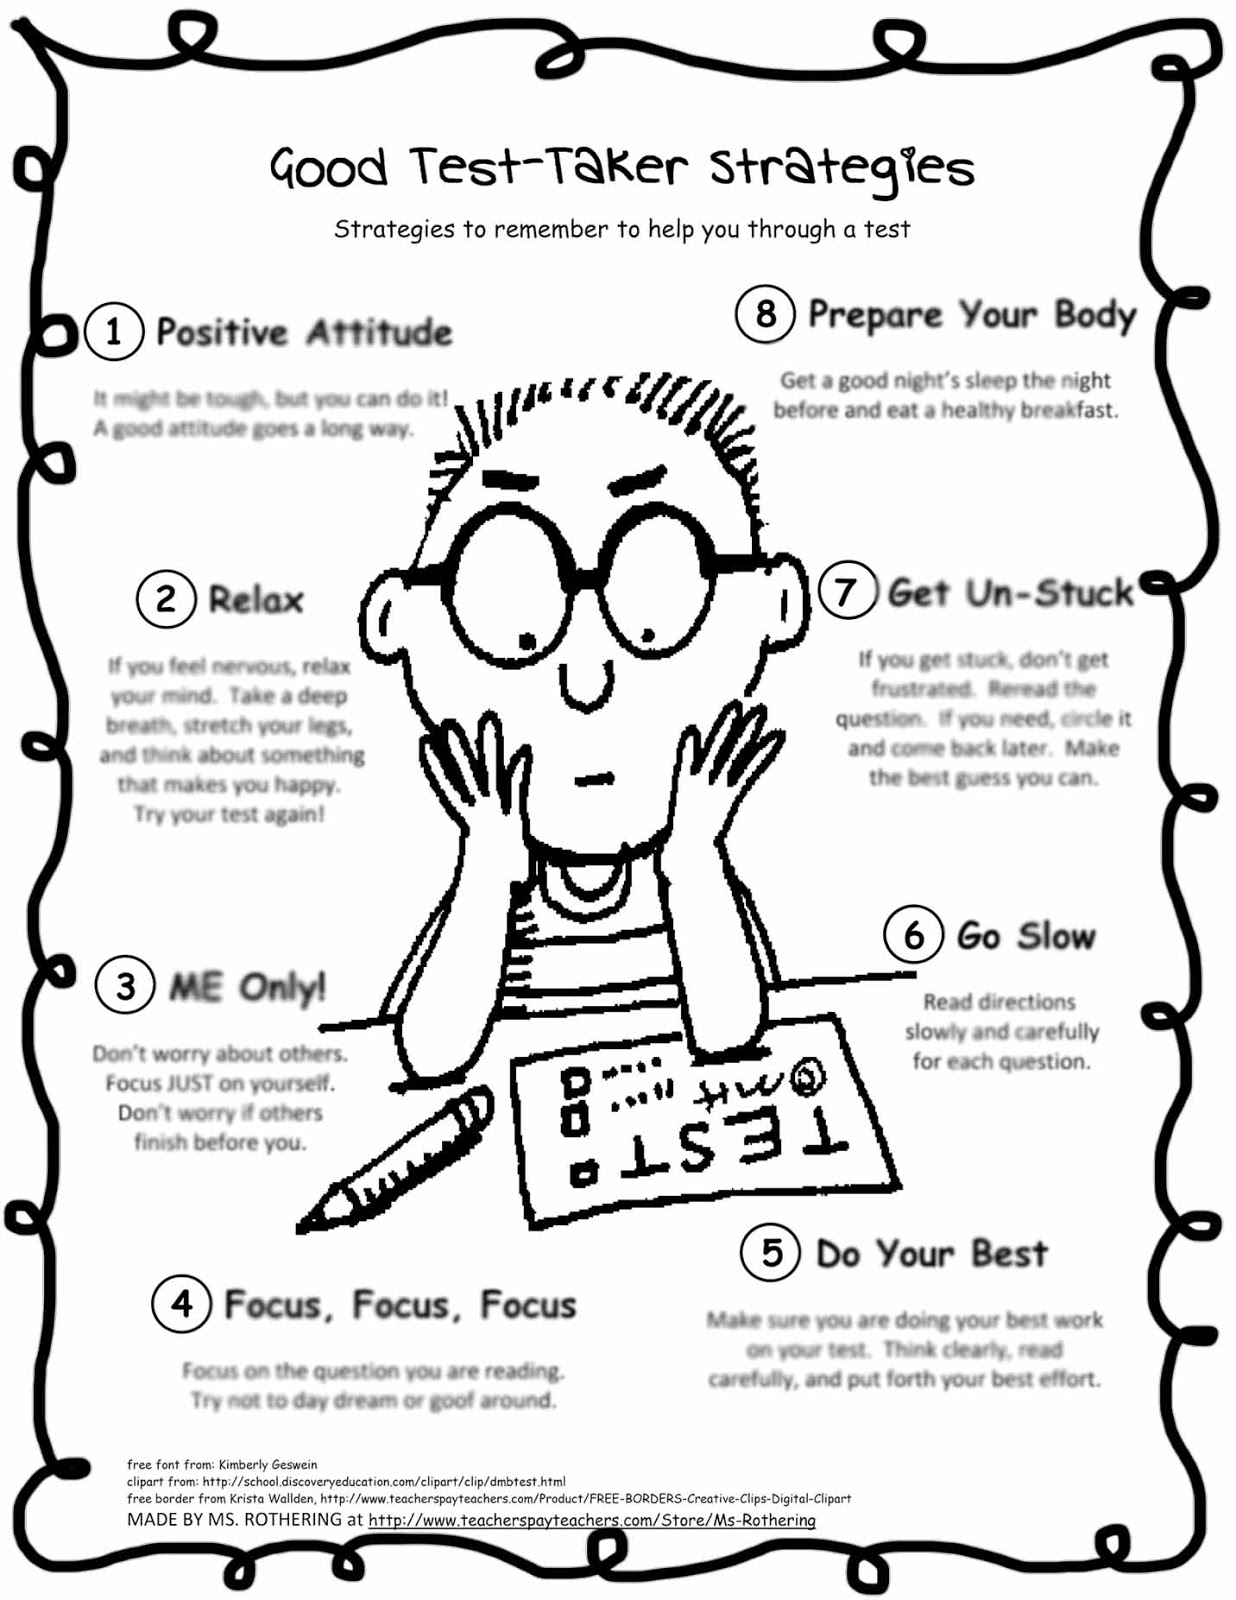 Post gratitude Worksheets Teen 513269 as well Terrain Features With Animations as well Draw Dog together with 2012 10 01 archive furthermore Drowning In School Work. on depression tips